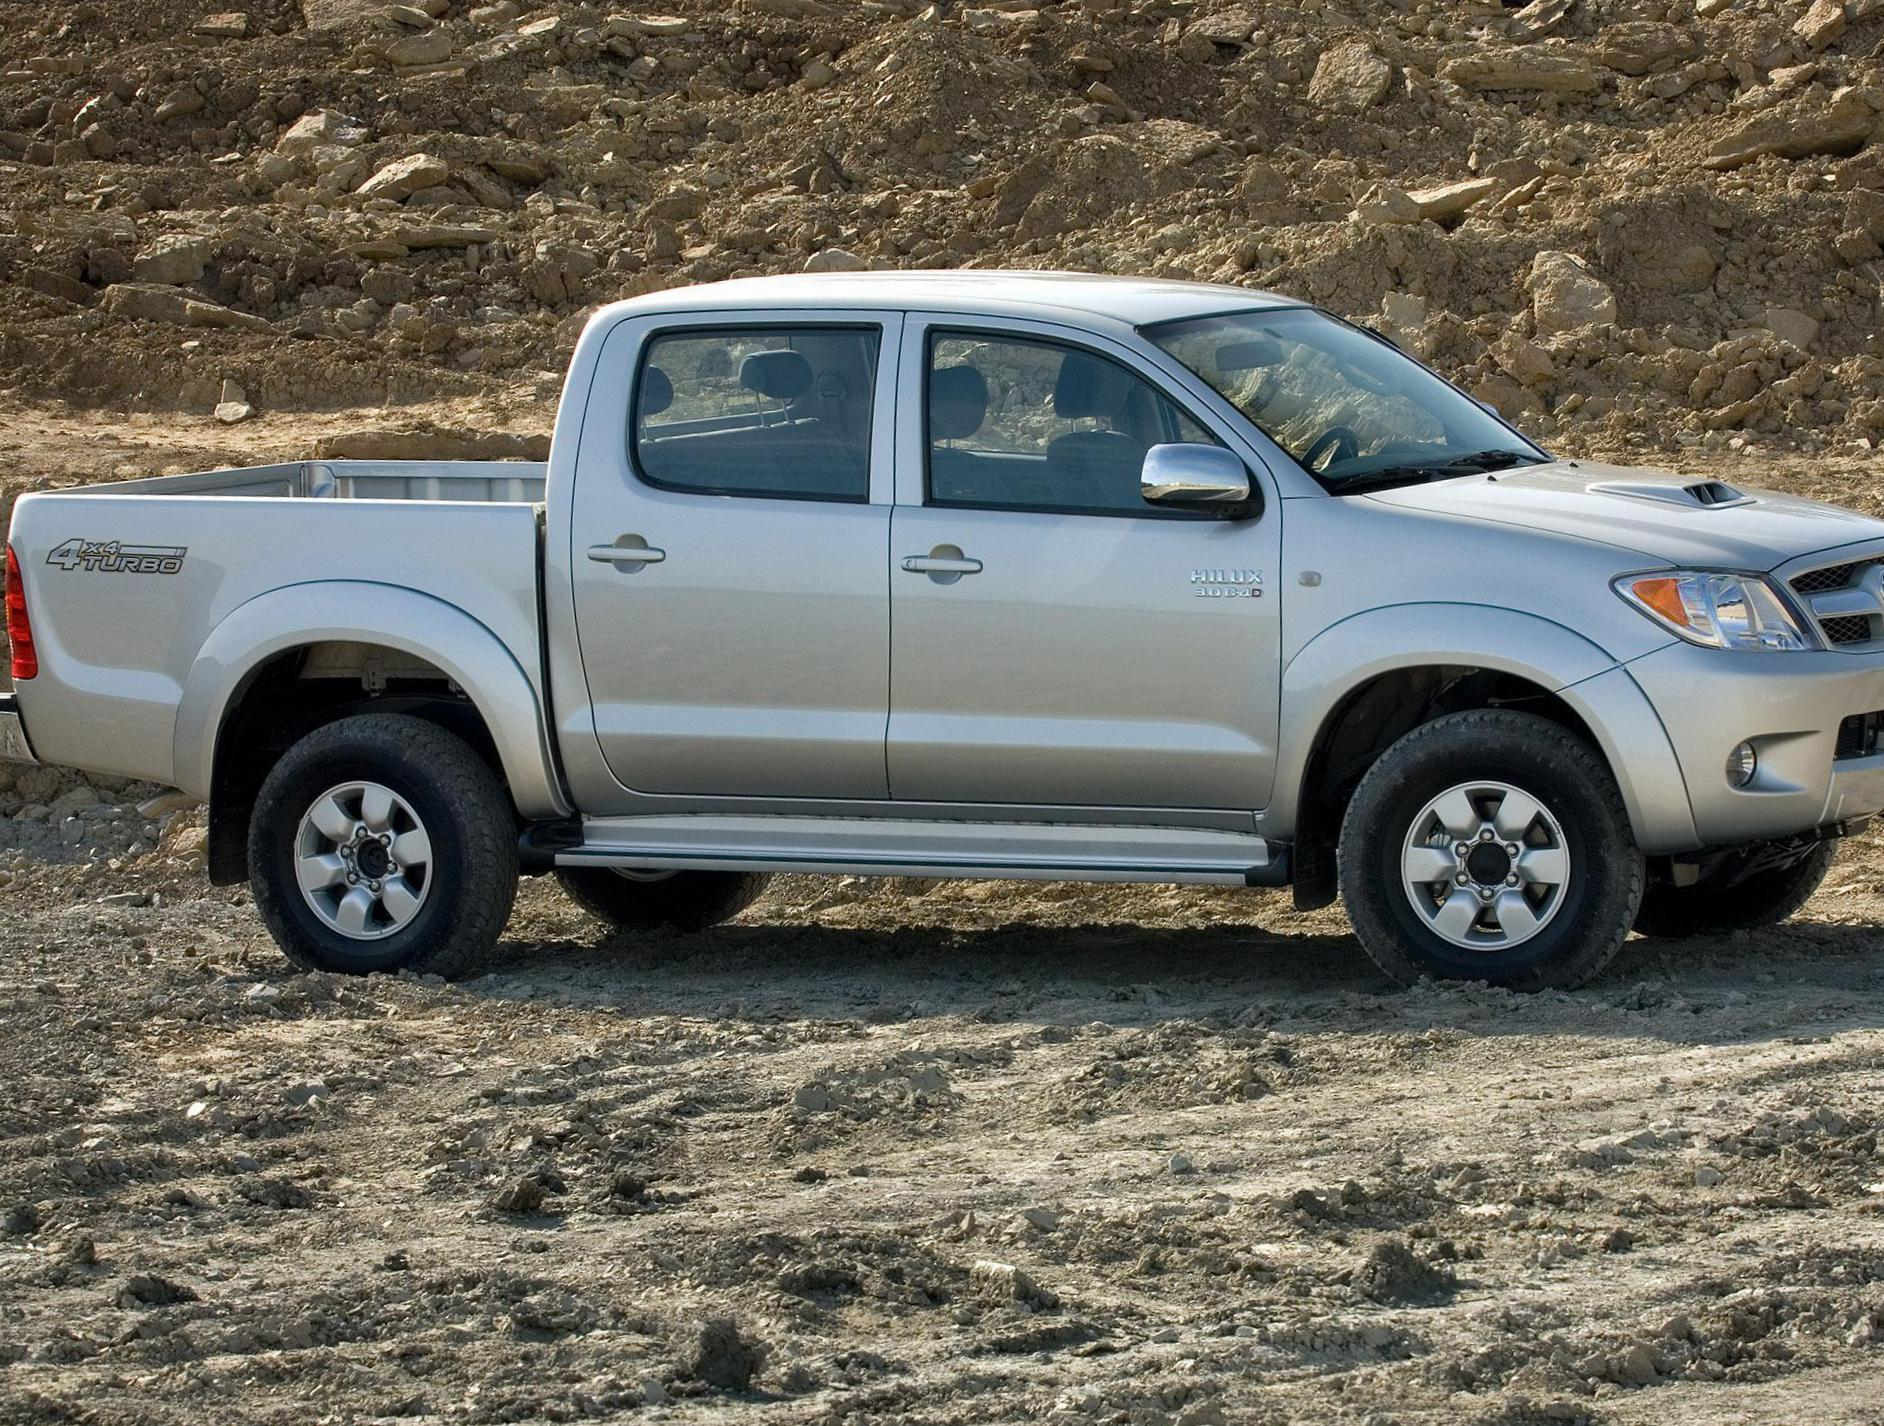 Toyota Hilux Double Cab for sale hatchback